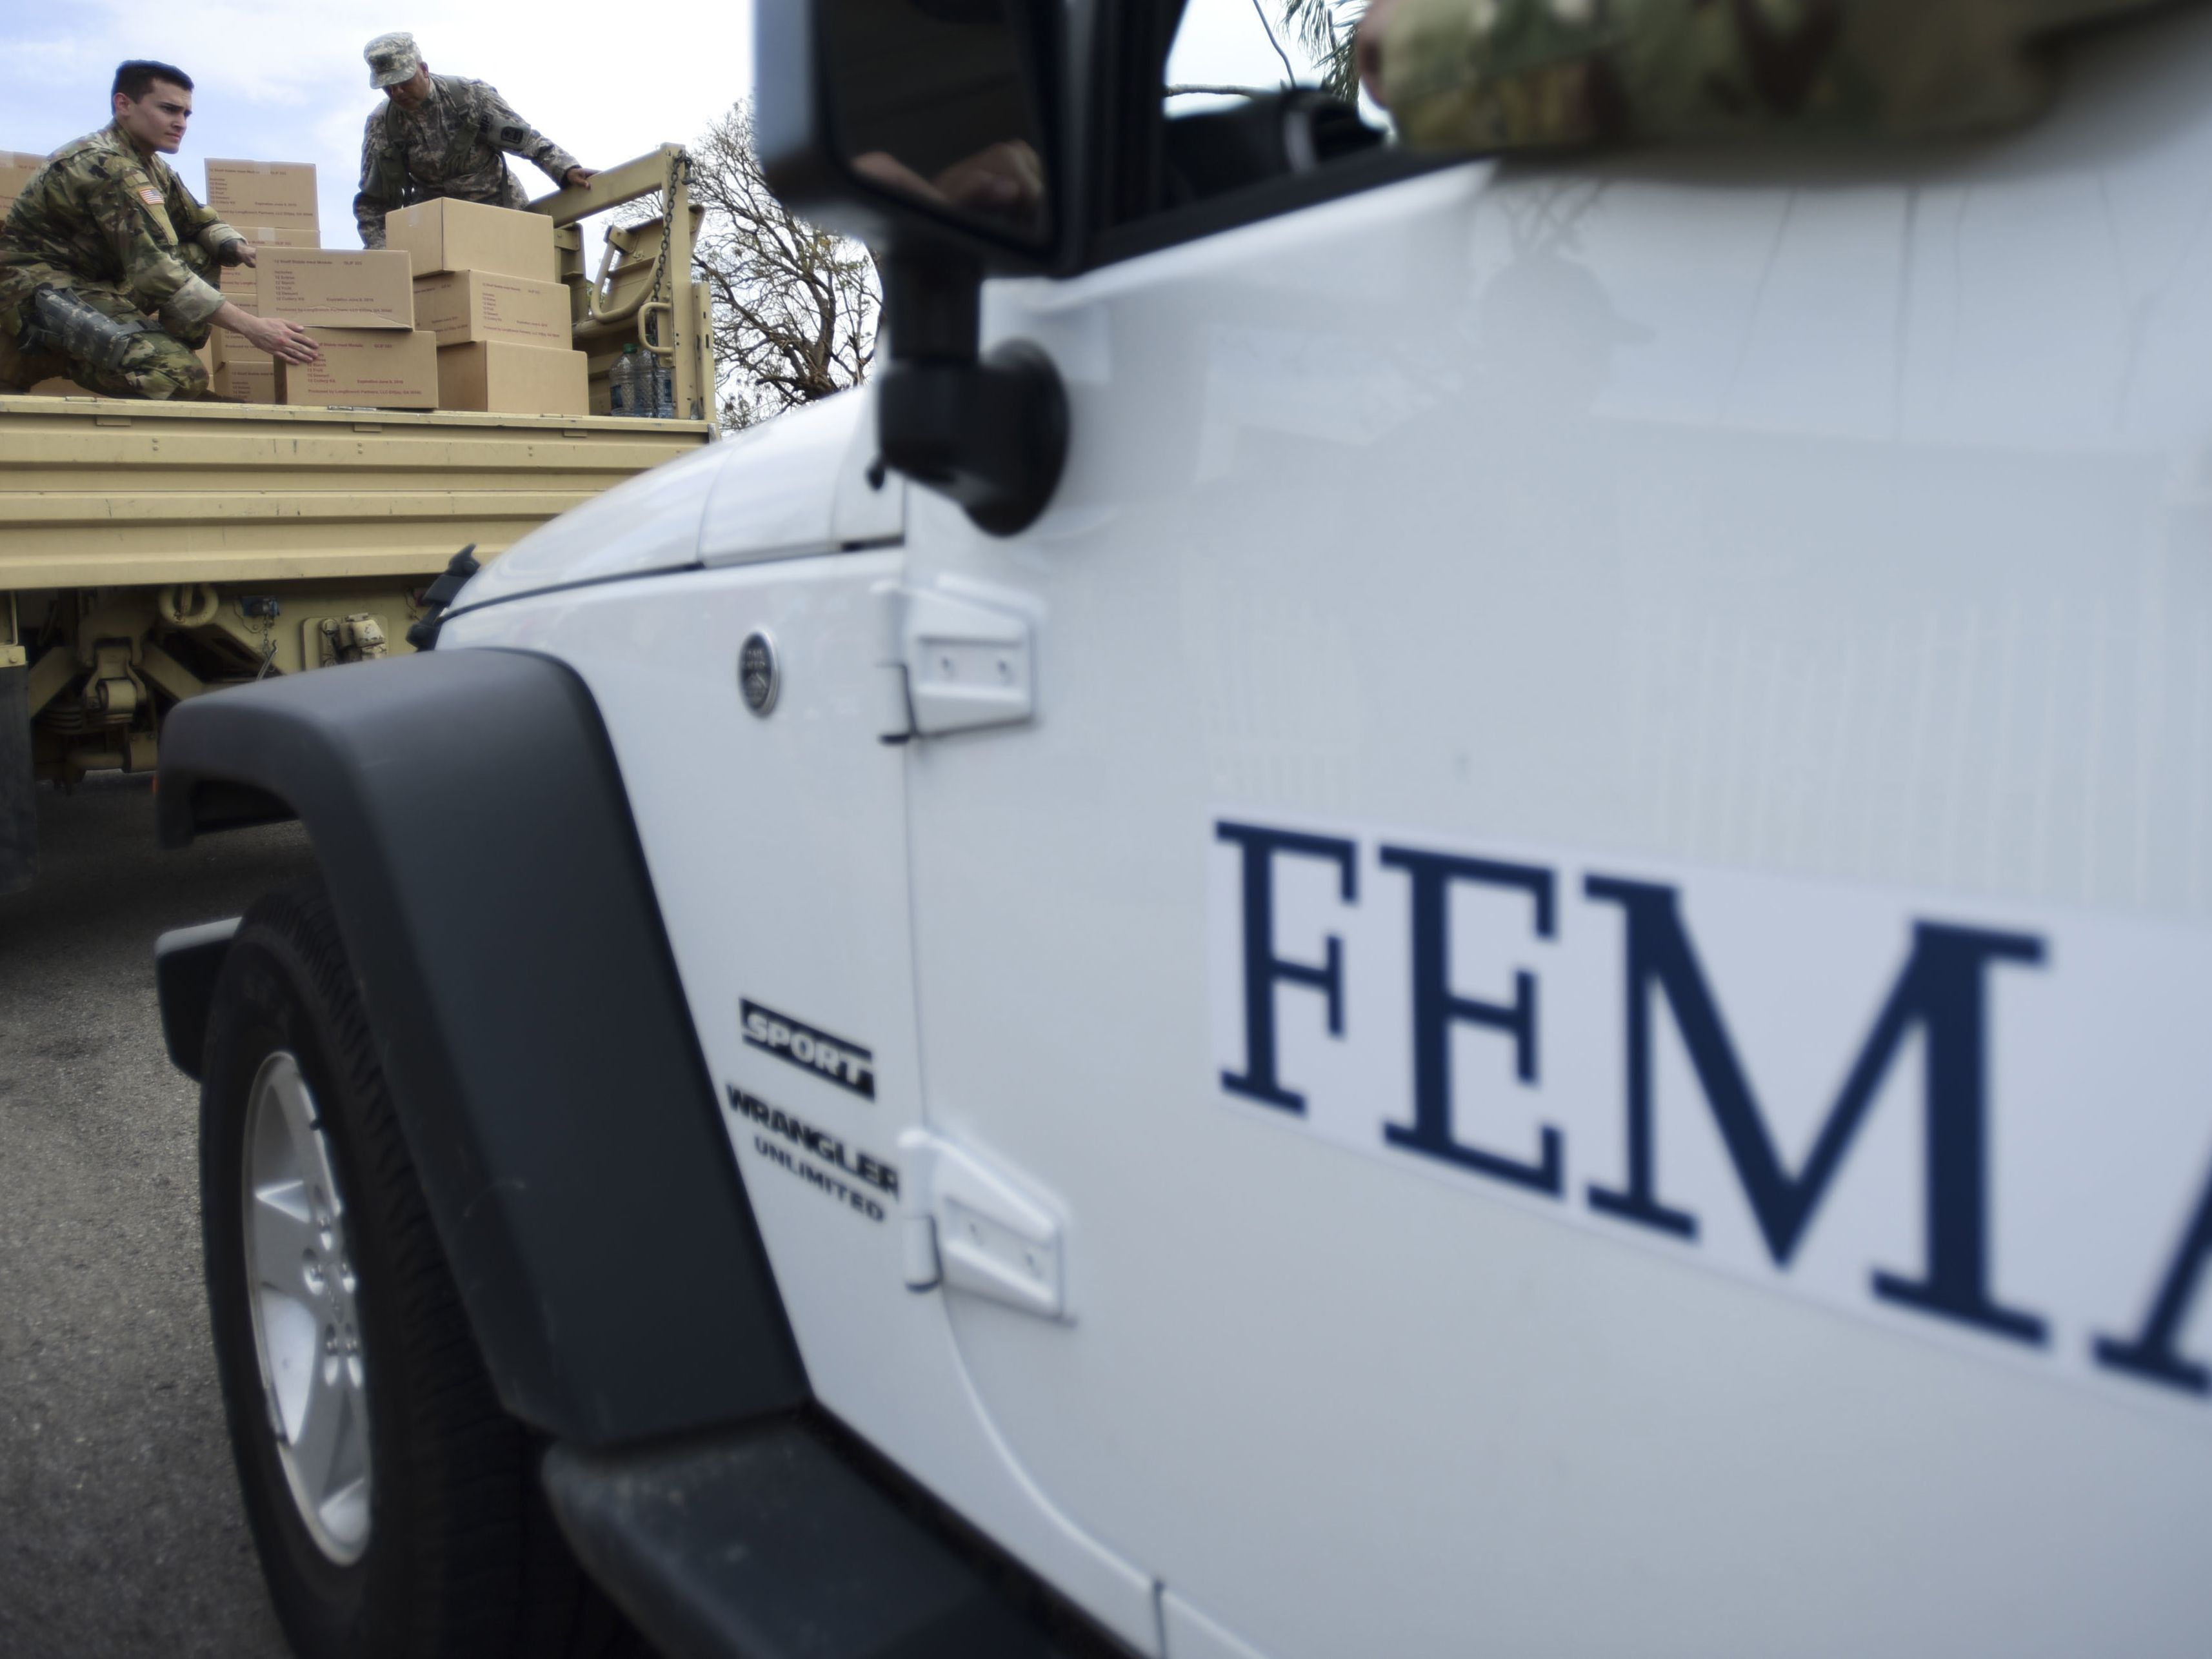 FEMA exposed information of 2.3 million disaster survivors to contractor, government watchdog reports